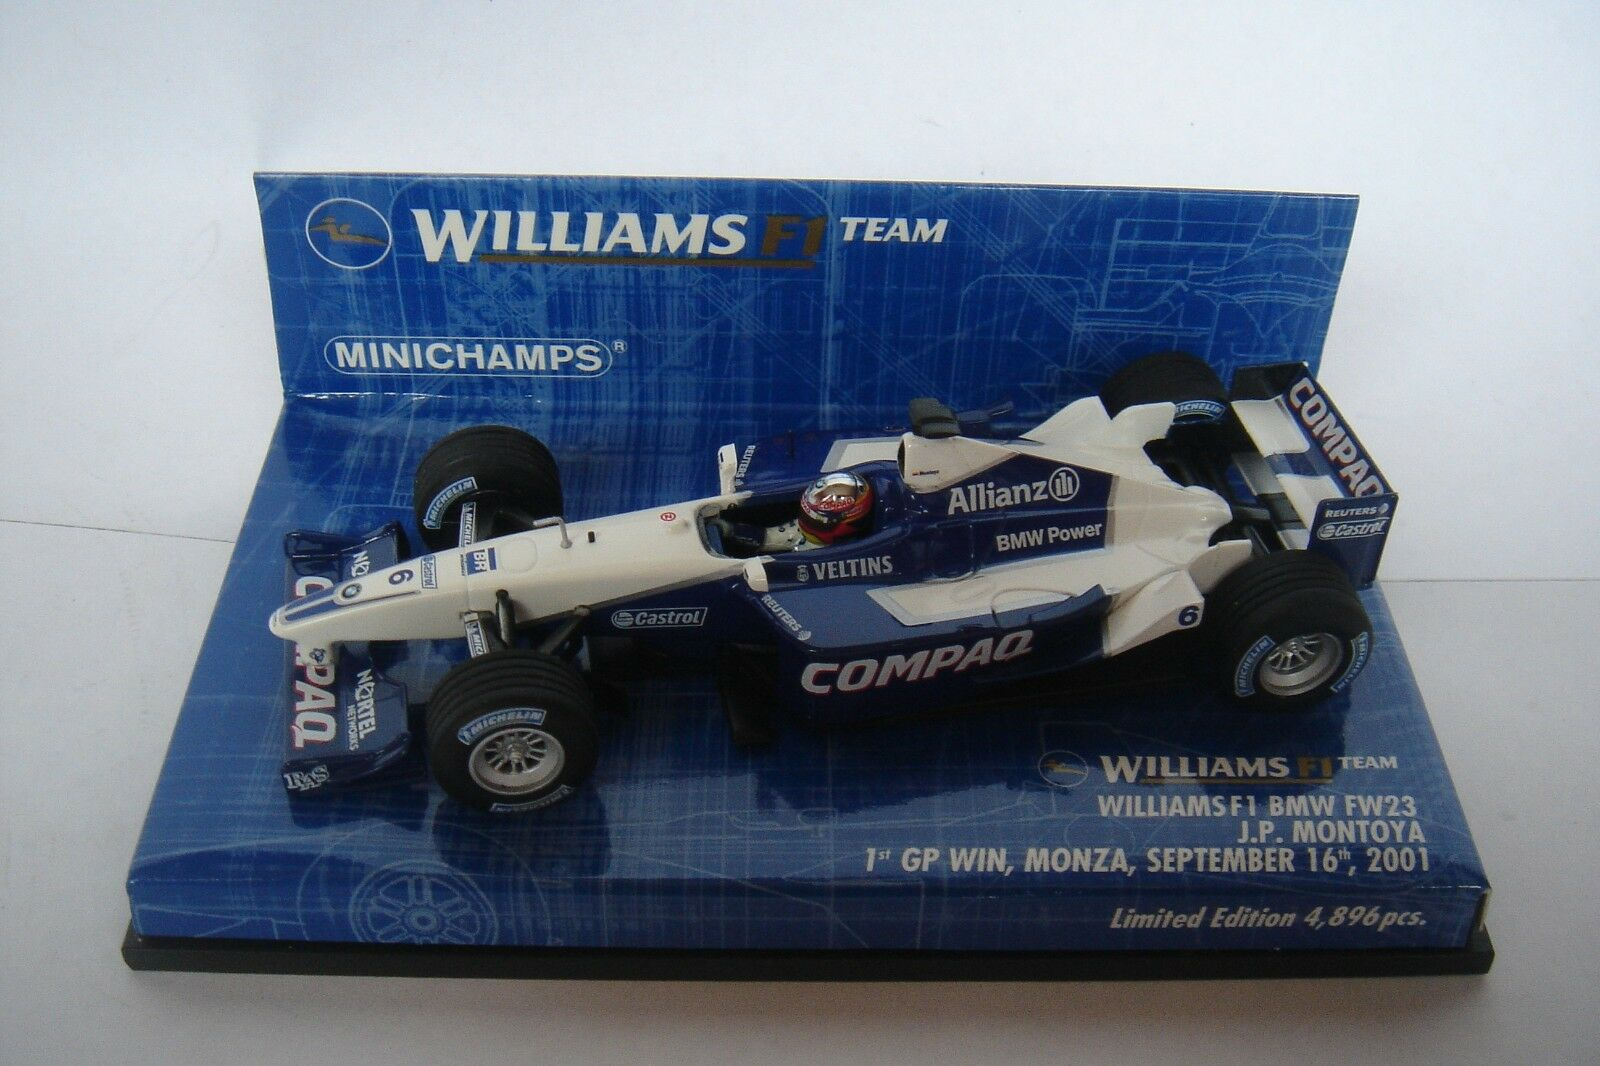 Joyeux Noël, bon shopping Minichamps 1:43 Williams FW23 1st Win Juan Pablo Montoya 010126 | Outlet Online Store